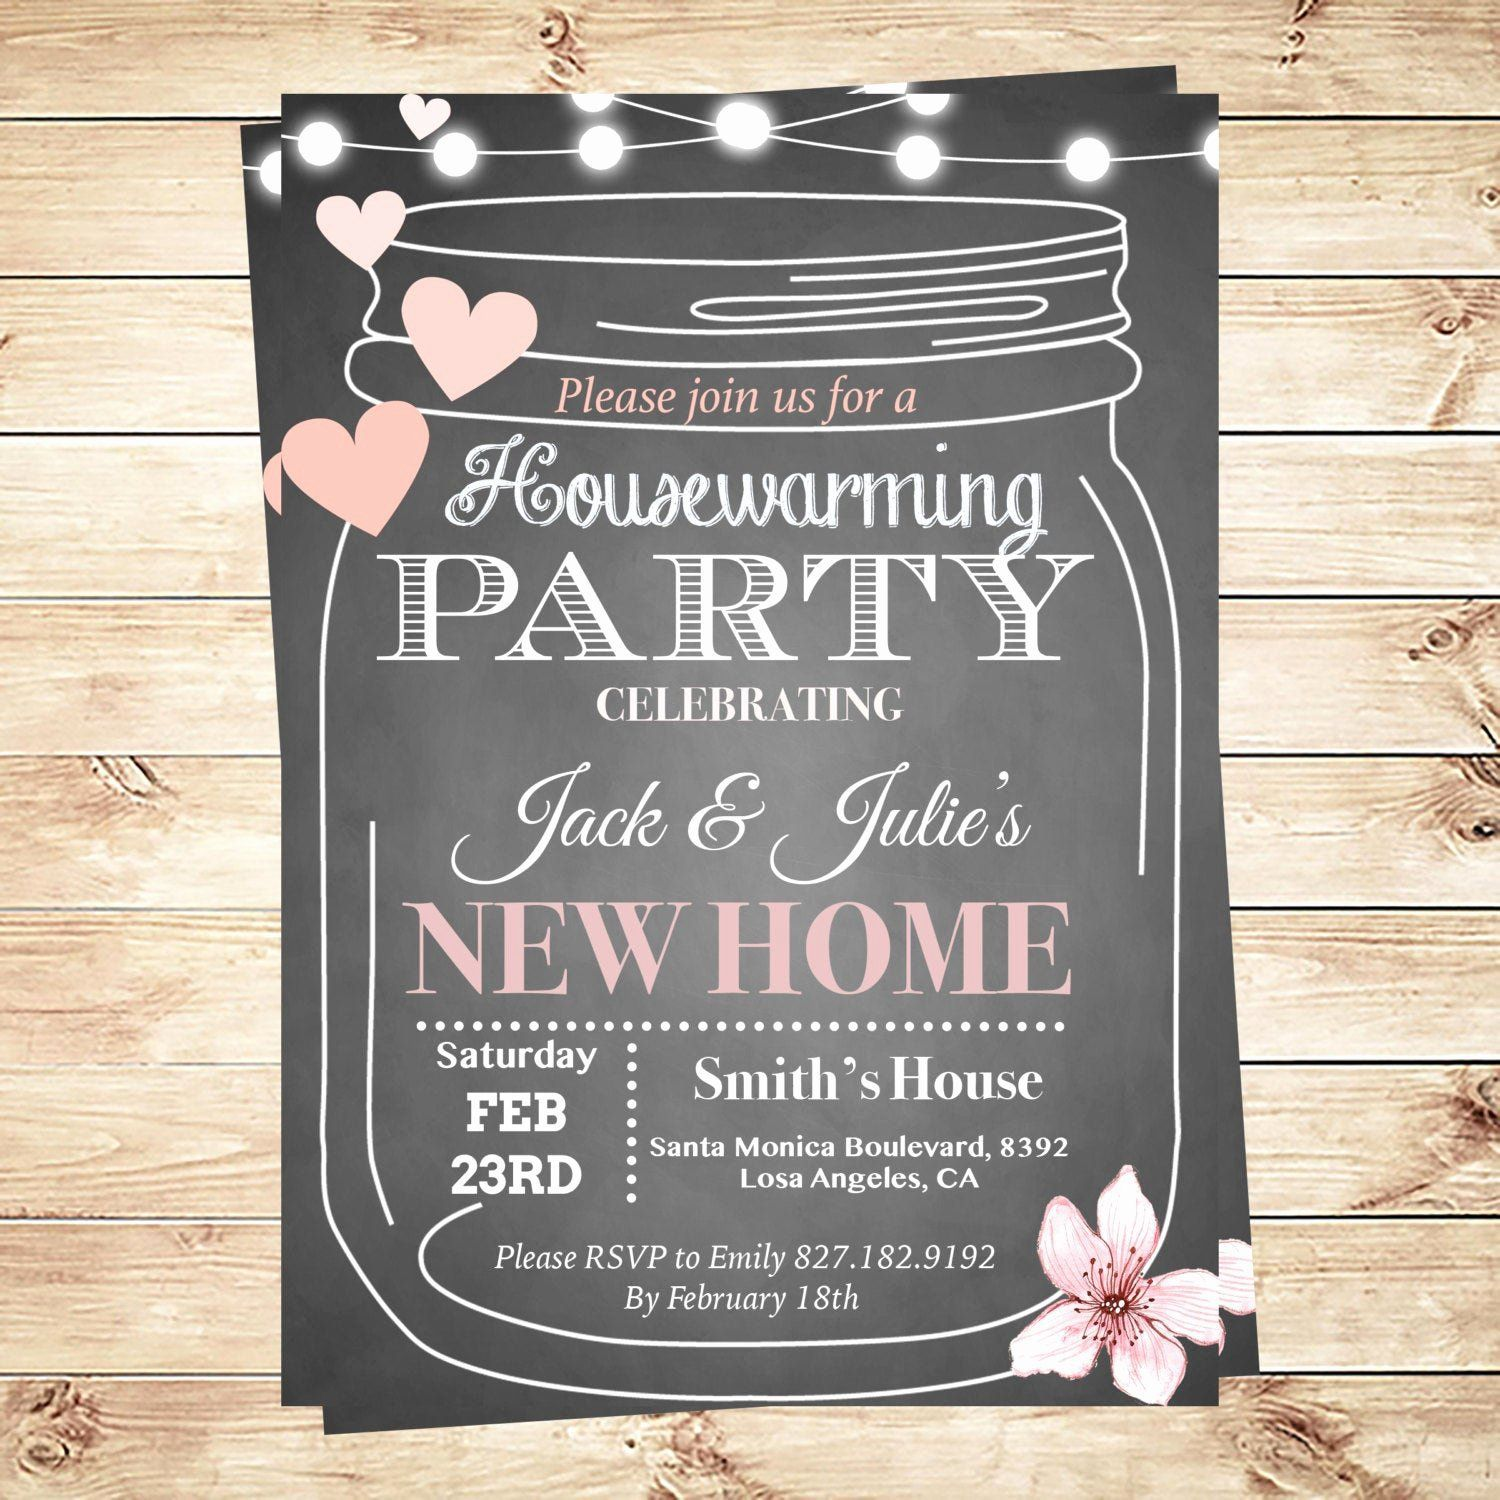 002 Magnificent Housewarming Party Invitation Template Design  Templates Free Download CardFull